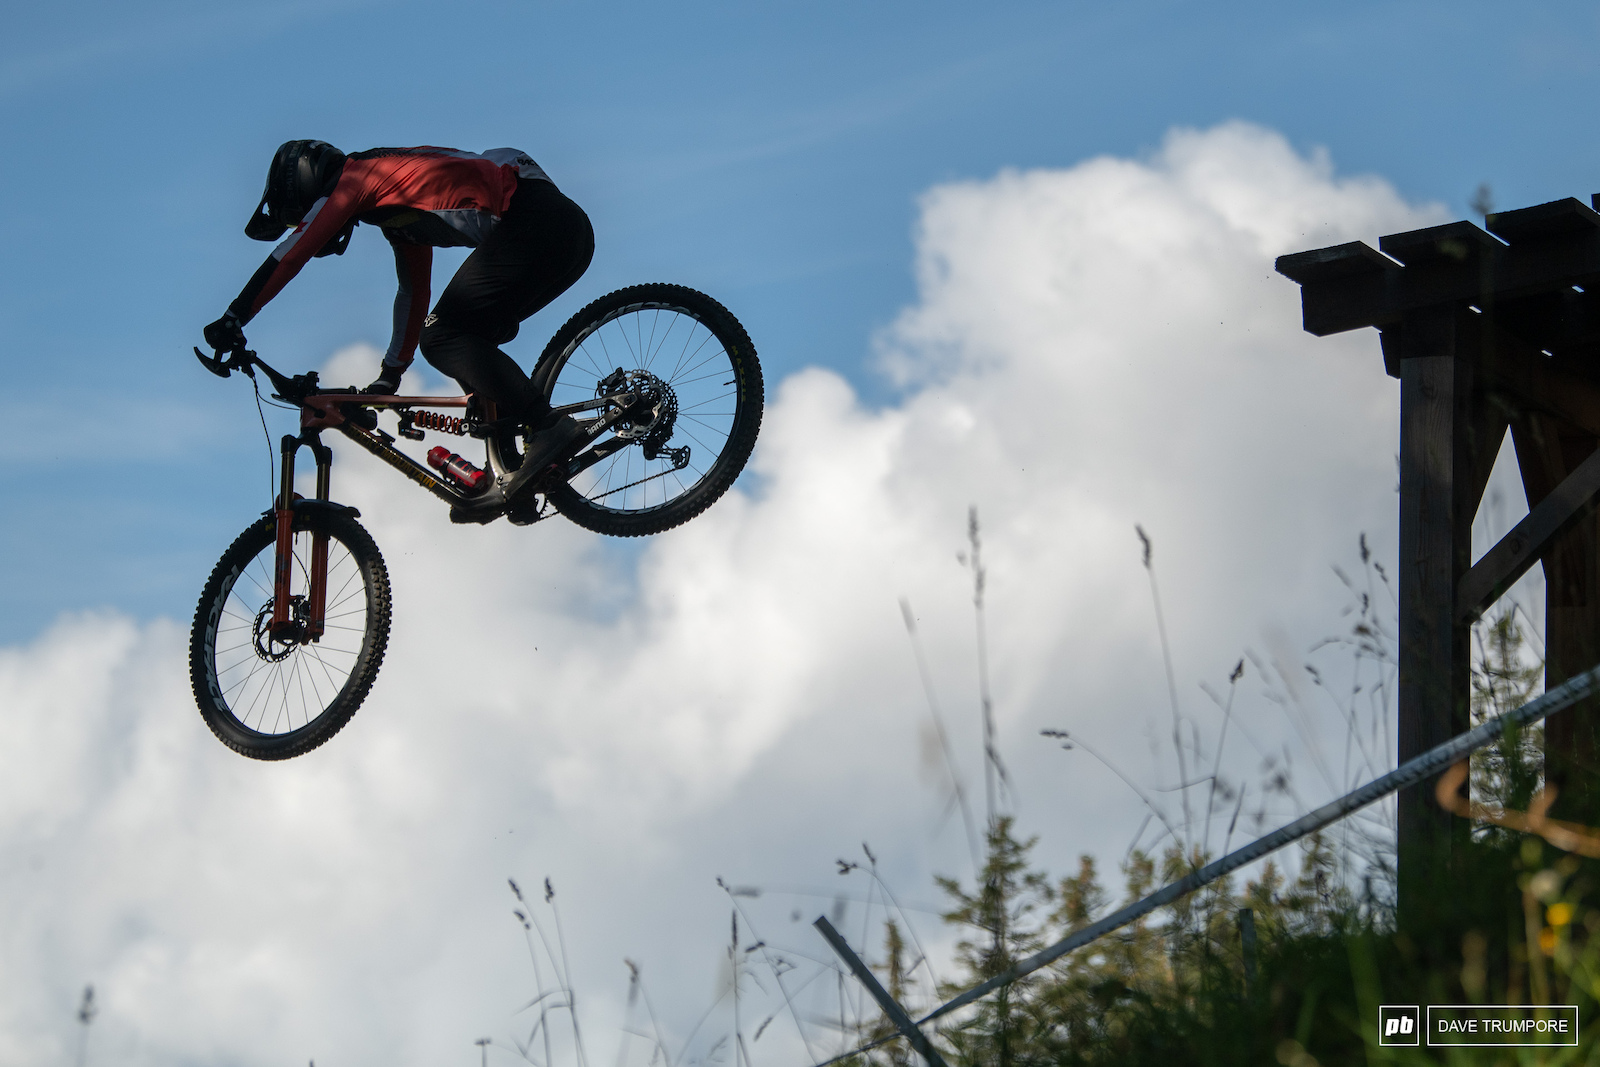 Remi Gauvin dropping in on Stage 2